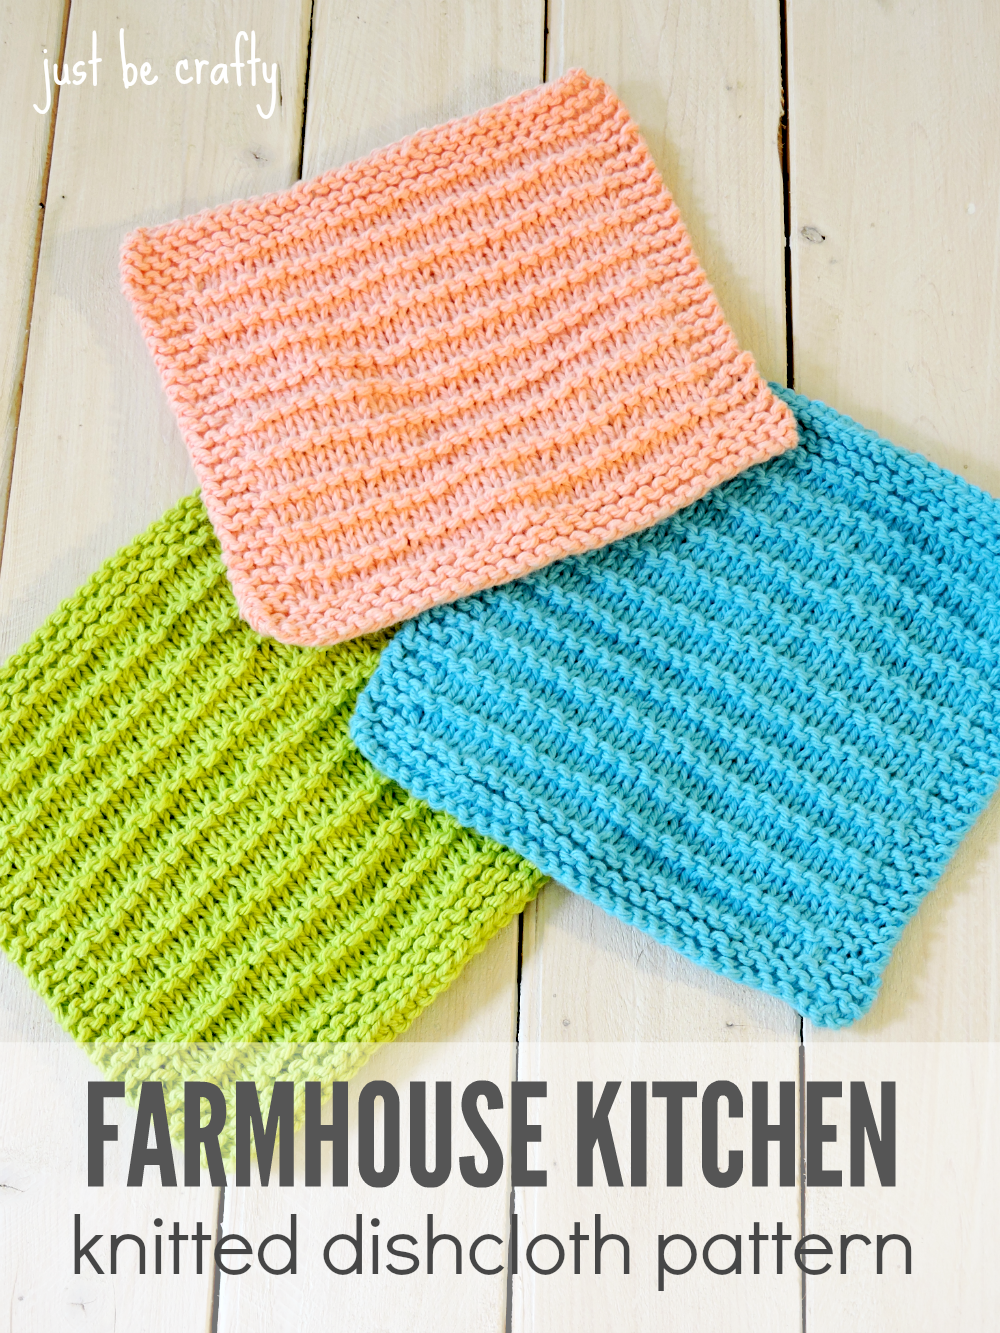 Free Knitting Patterns Dishcloths Alphabet : Farmhouse Kitchen Knitted Dishcloths Knitted dishcloths ...